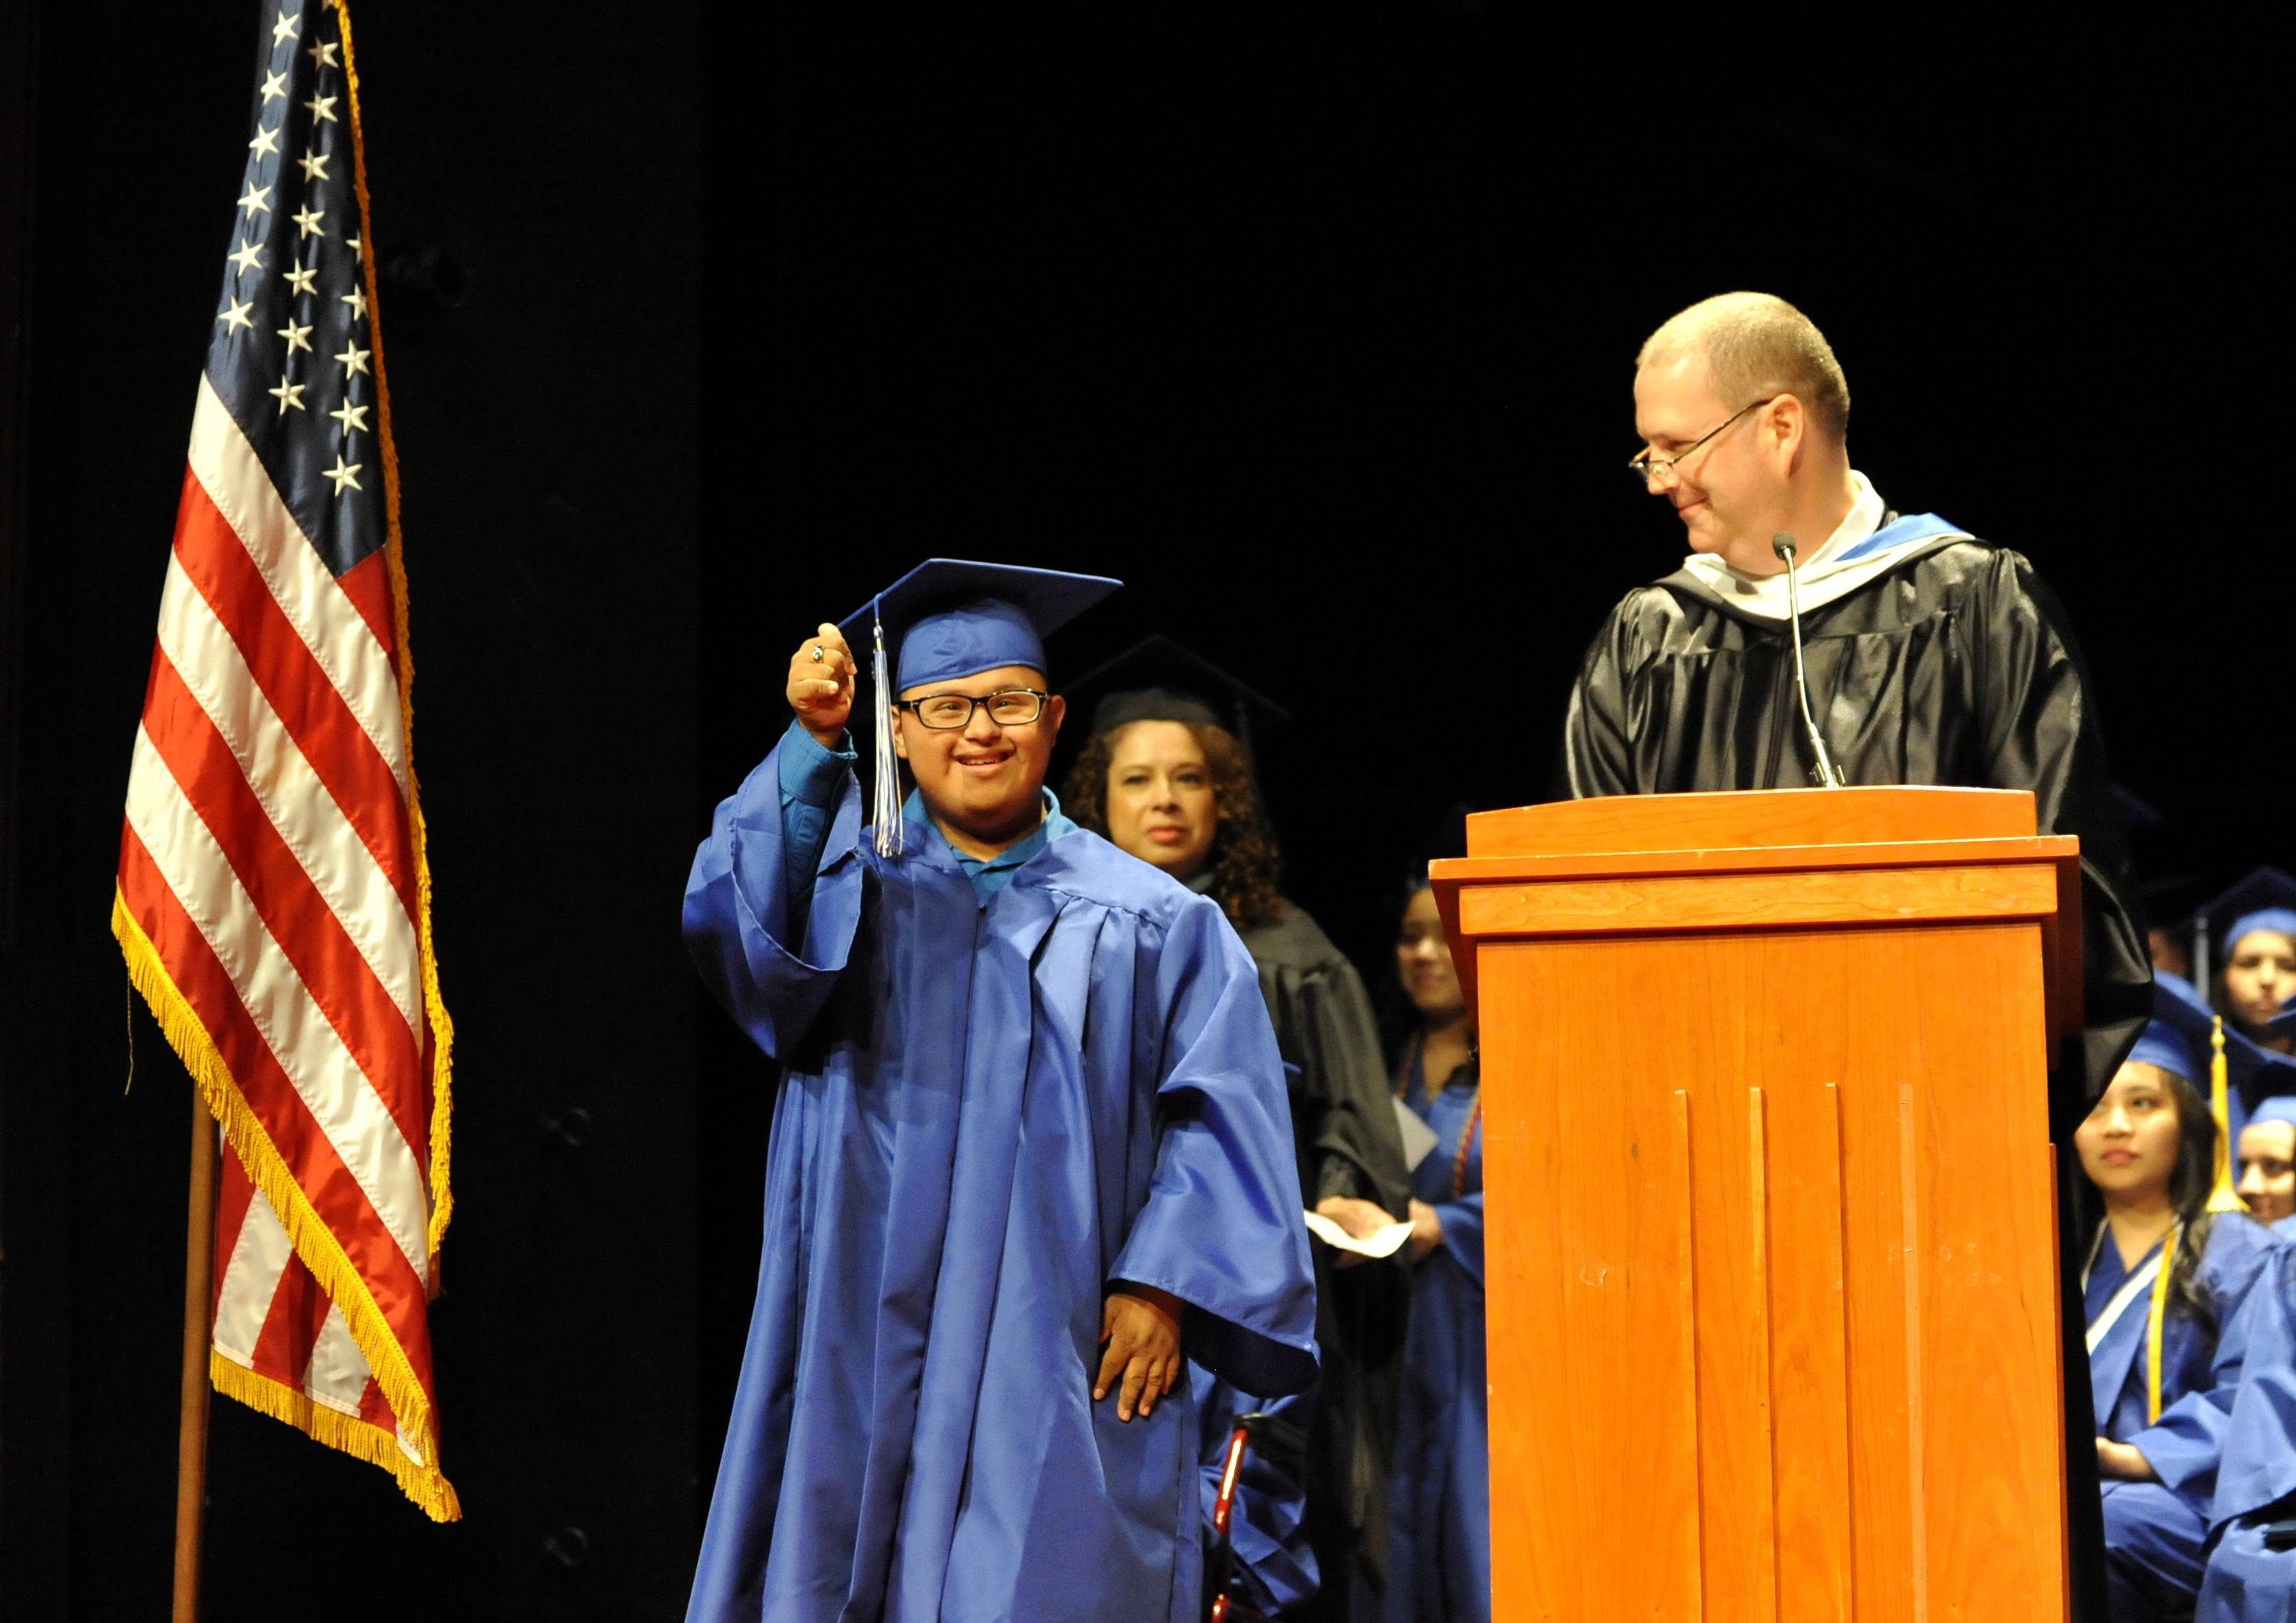 Alfonso Mercado cheers as he receives his diploma.